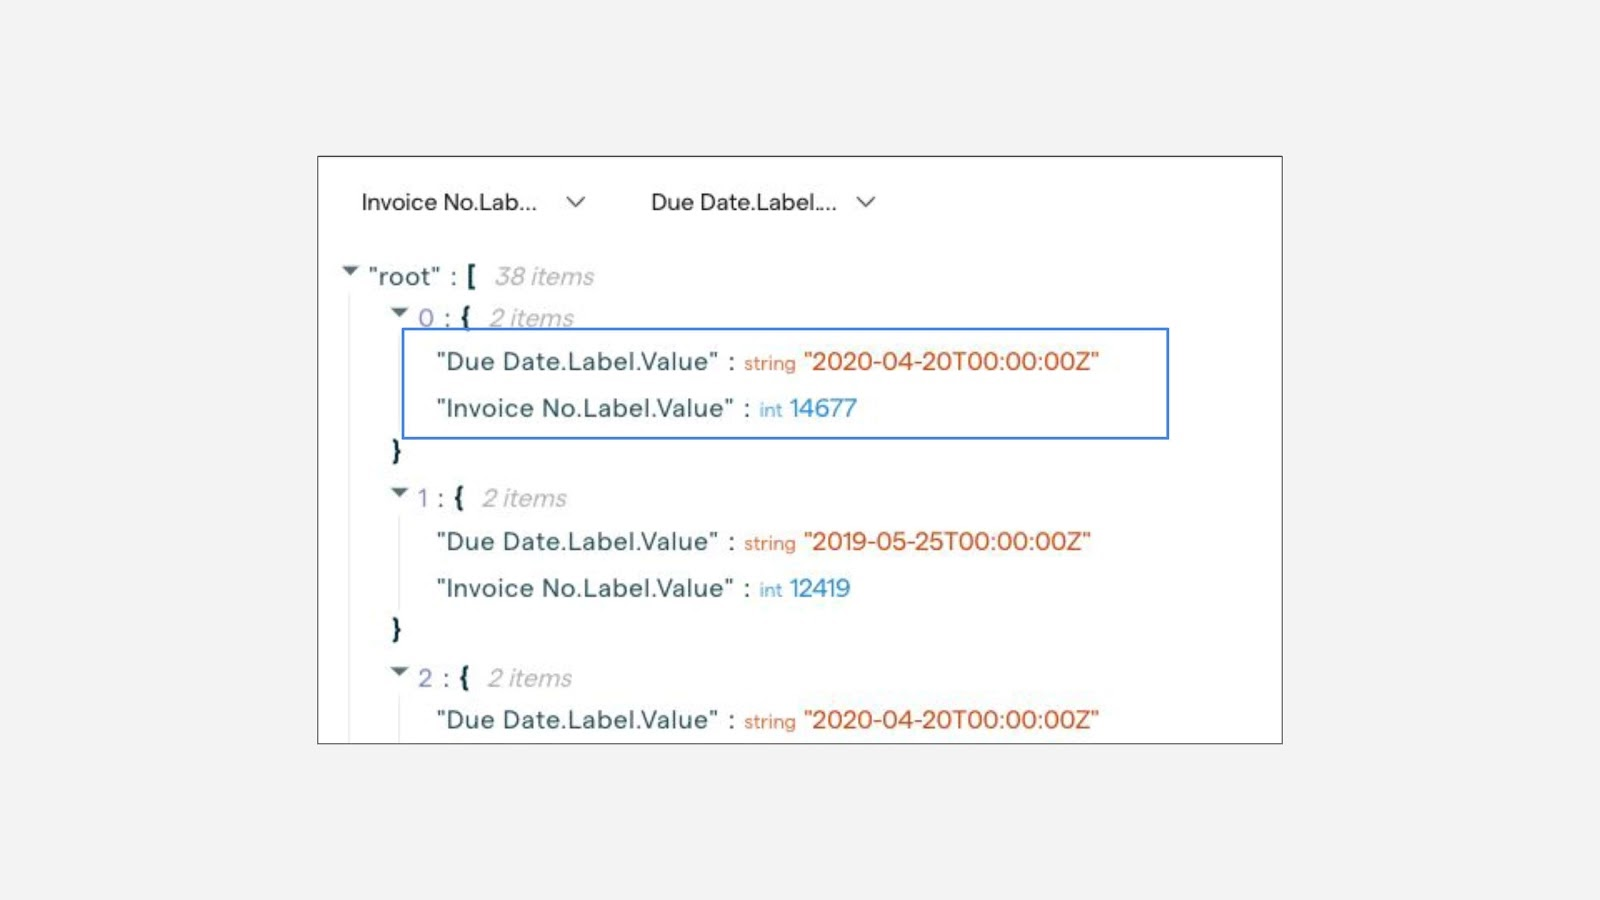 JSON query result for Invoice No andDue Date fields